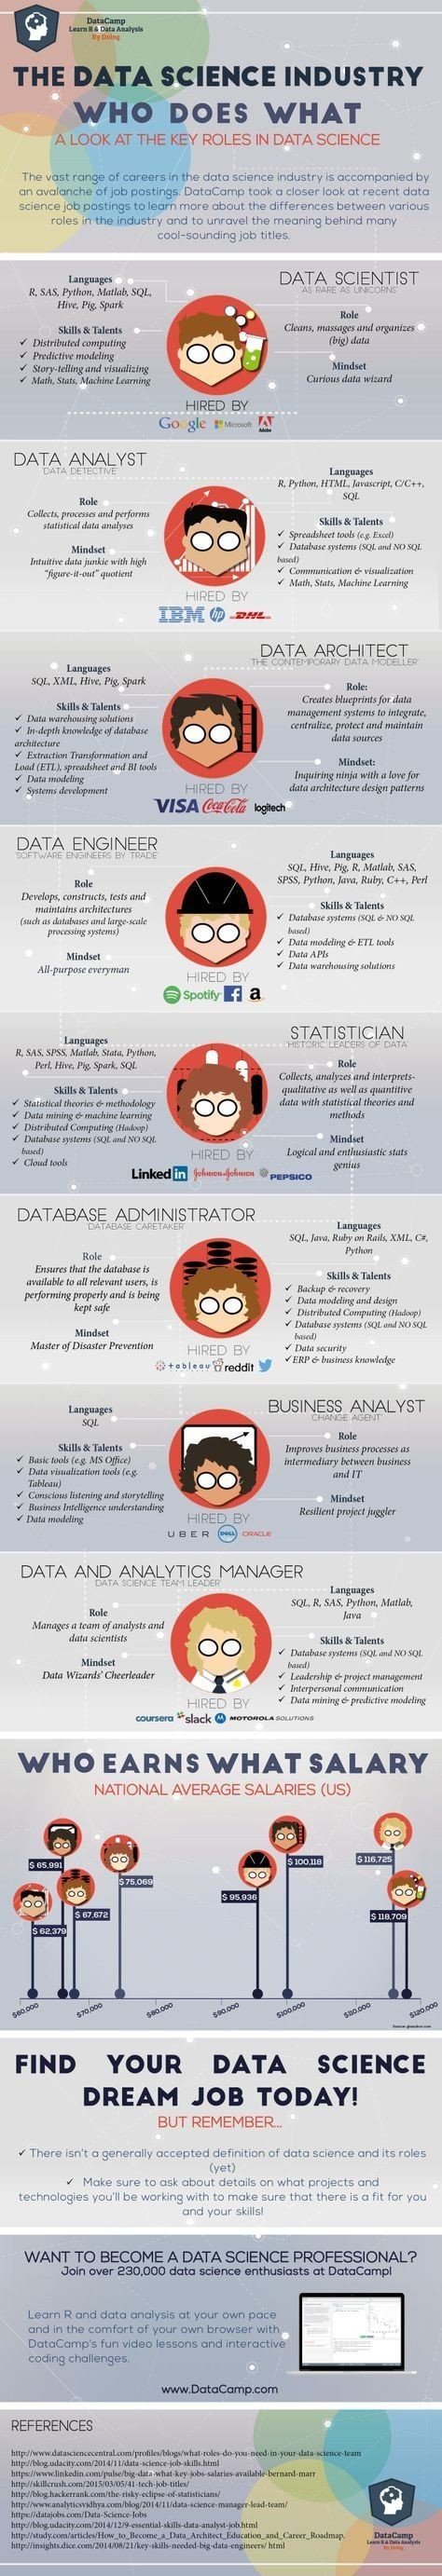 The Data science industry - who does what - #IOT #Smart_city #Infographic